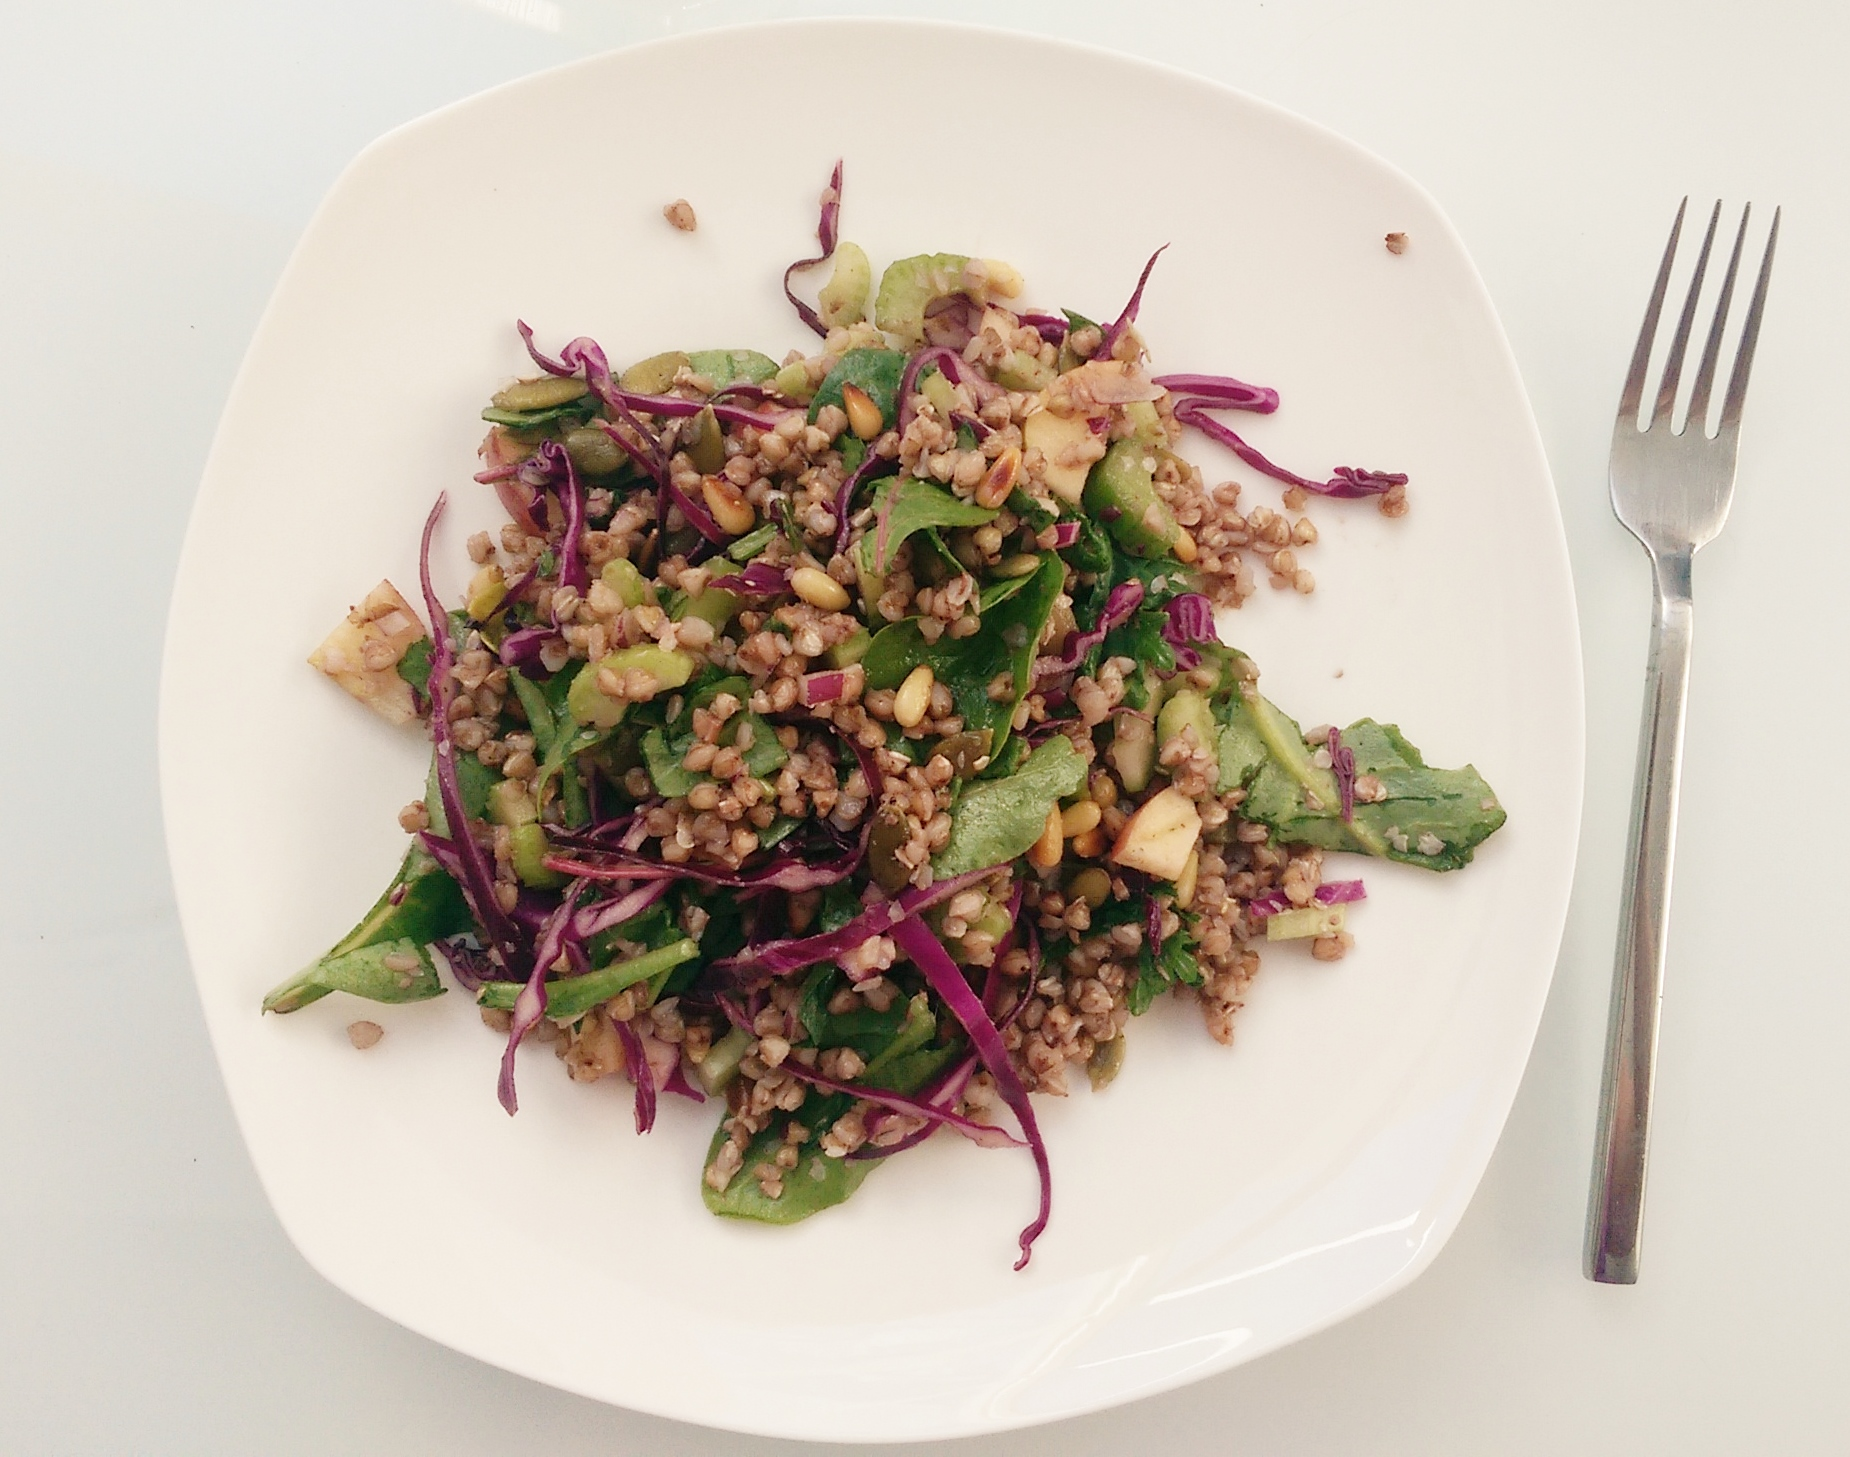 Buckwheat Waldorf Salad - a filling vegan option for Meatless Monday! Super easy and delicious